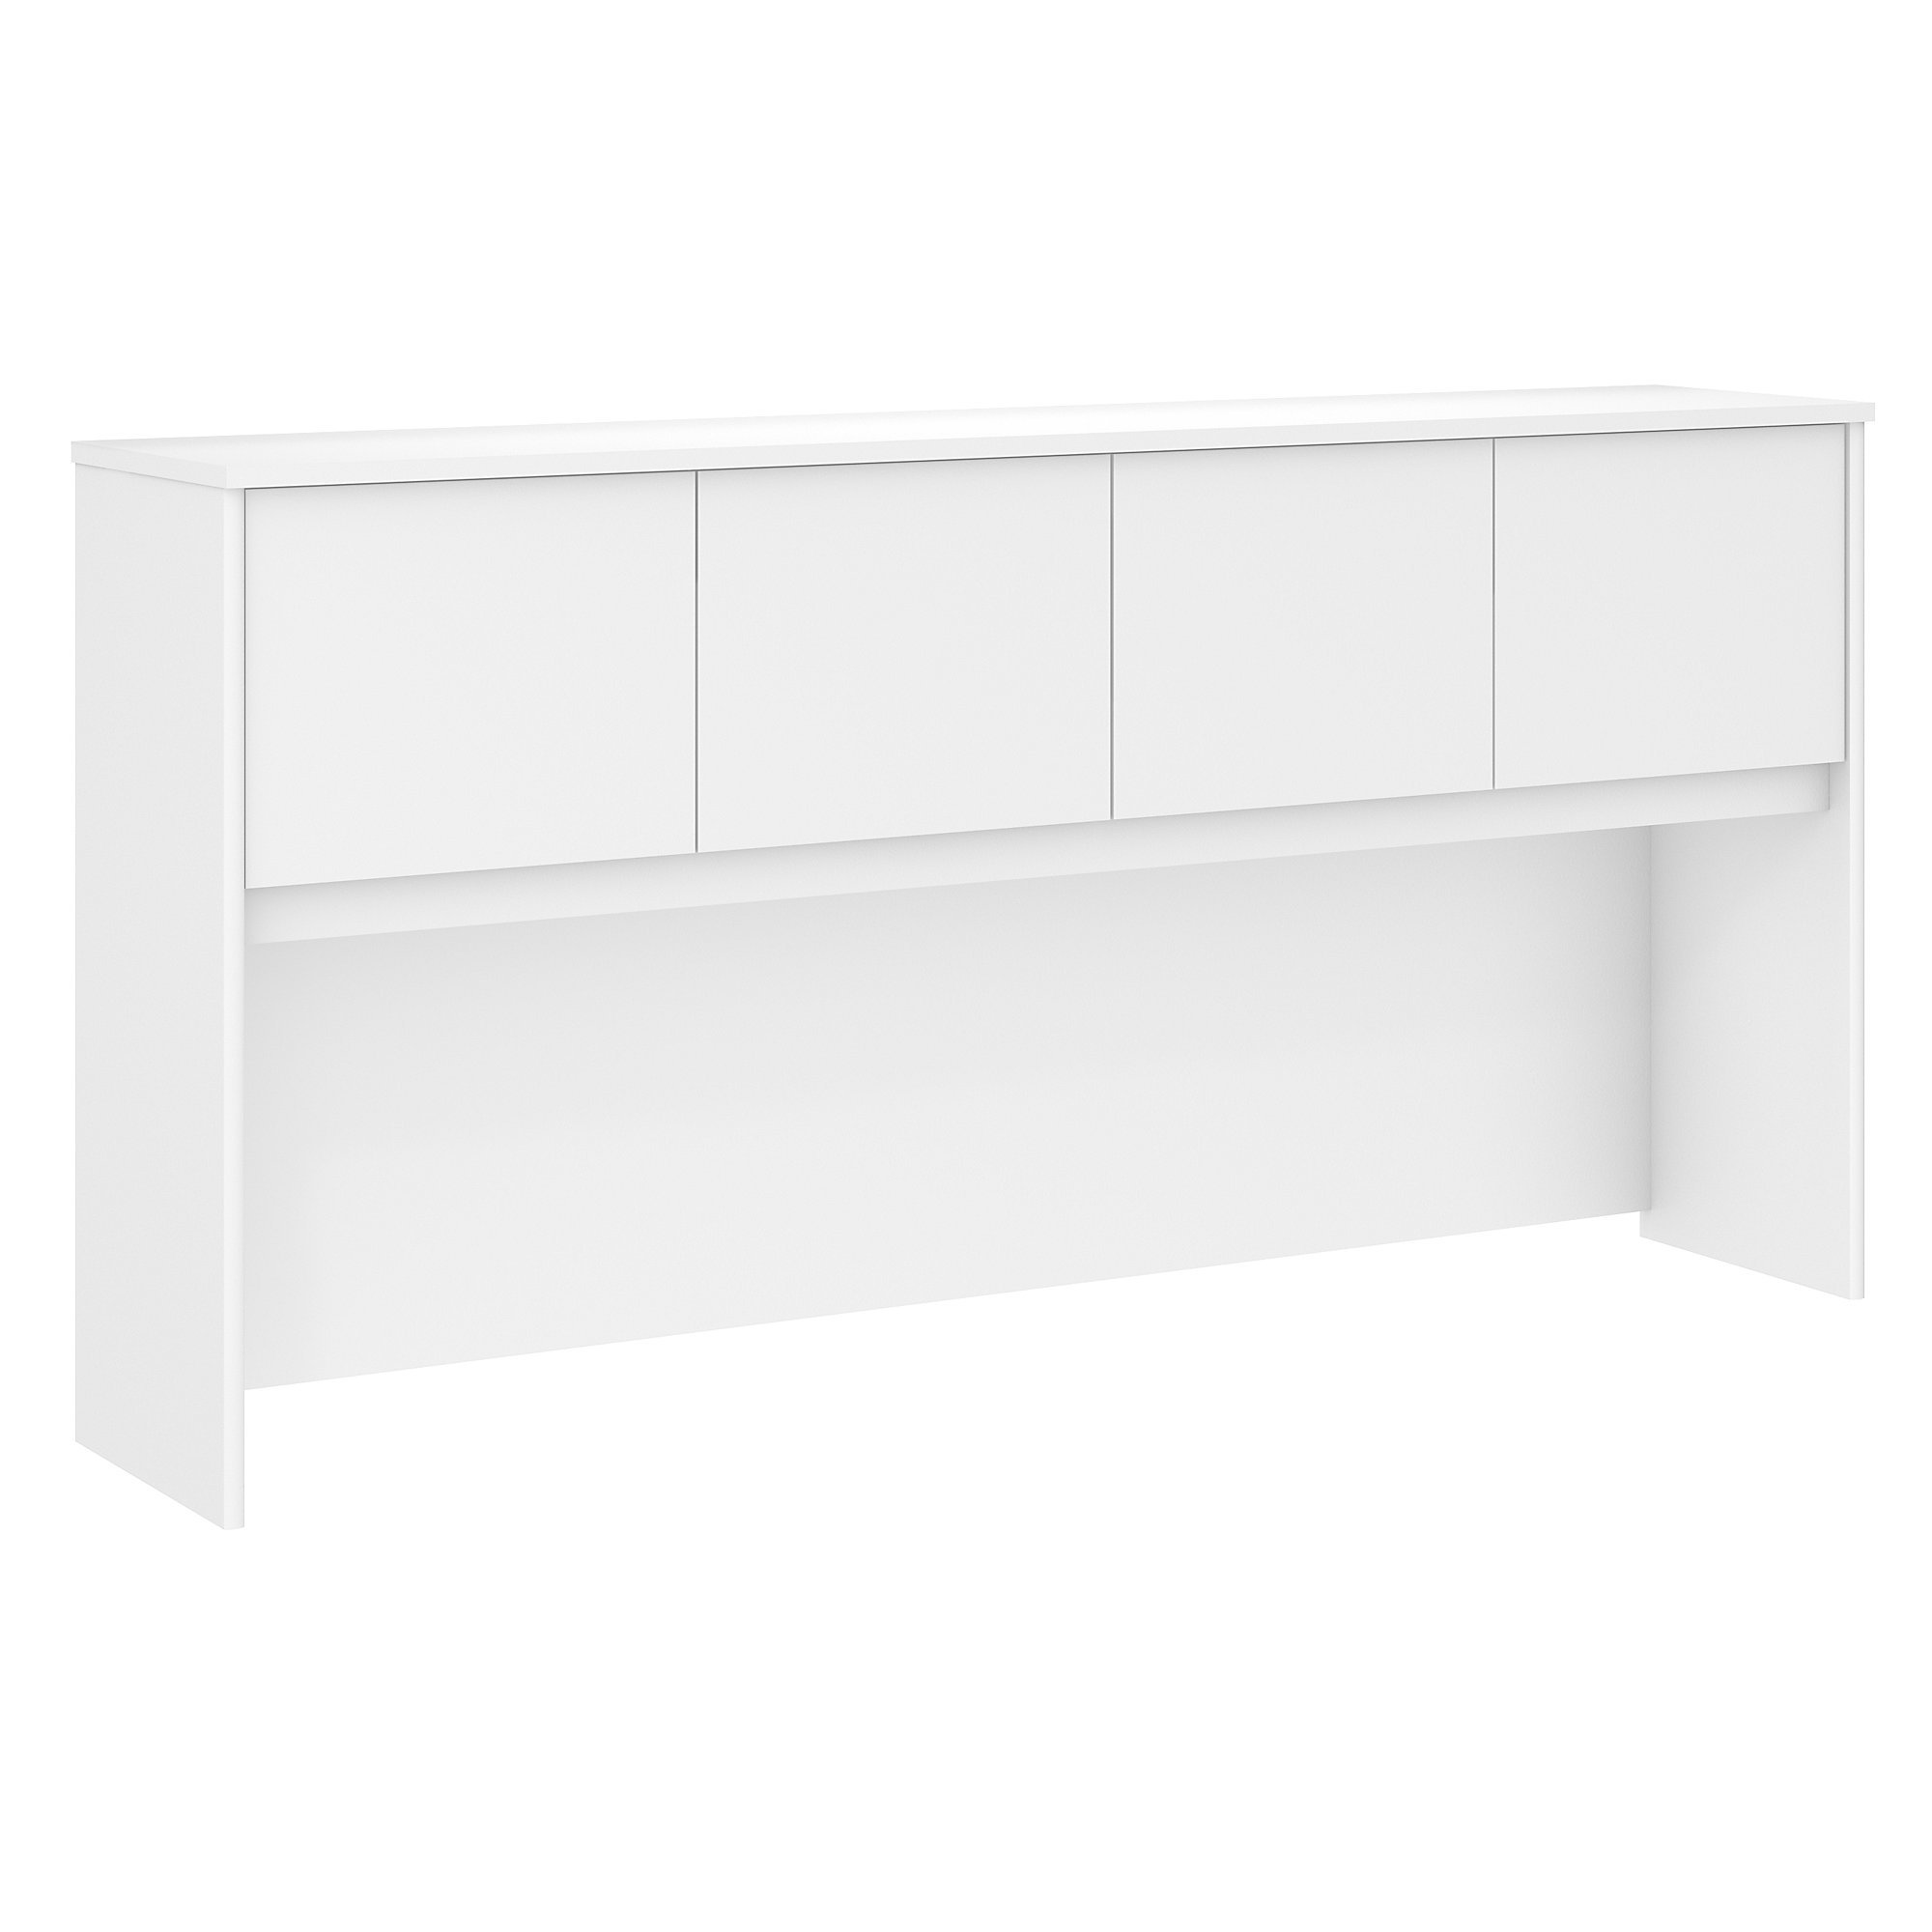 Bush Business Furniture Studio C 72W Hutch in White by Bush Business Furniture (Image #1)